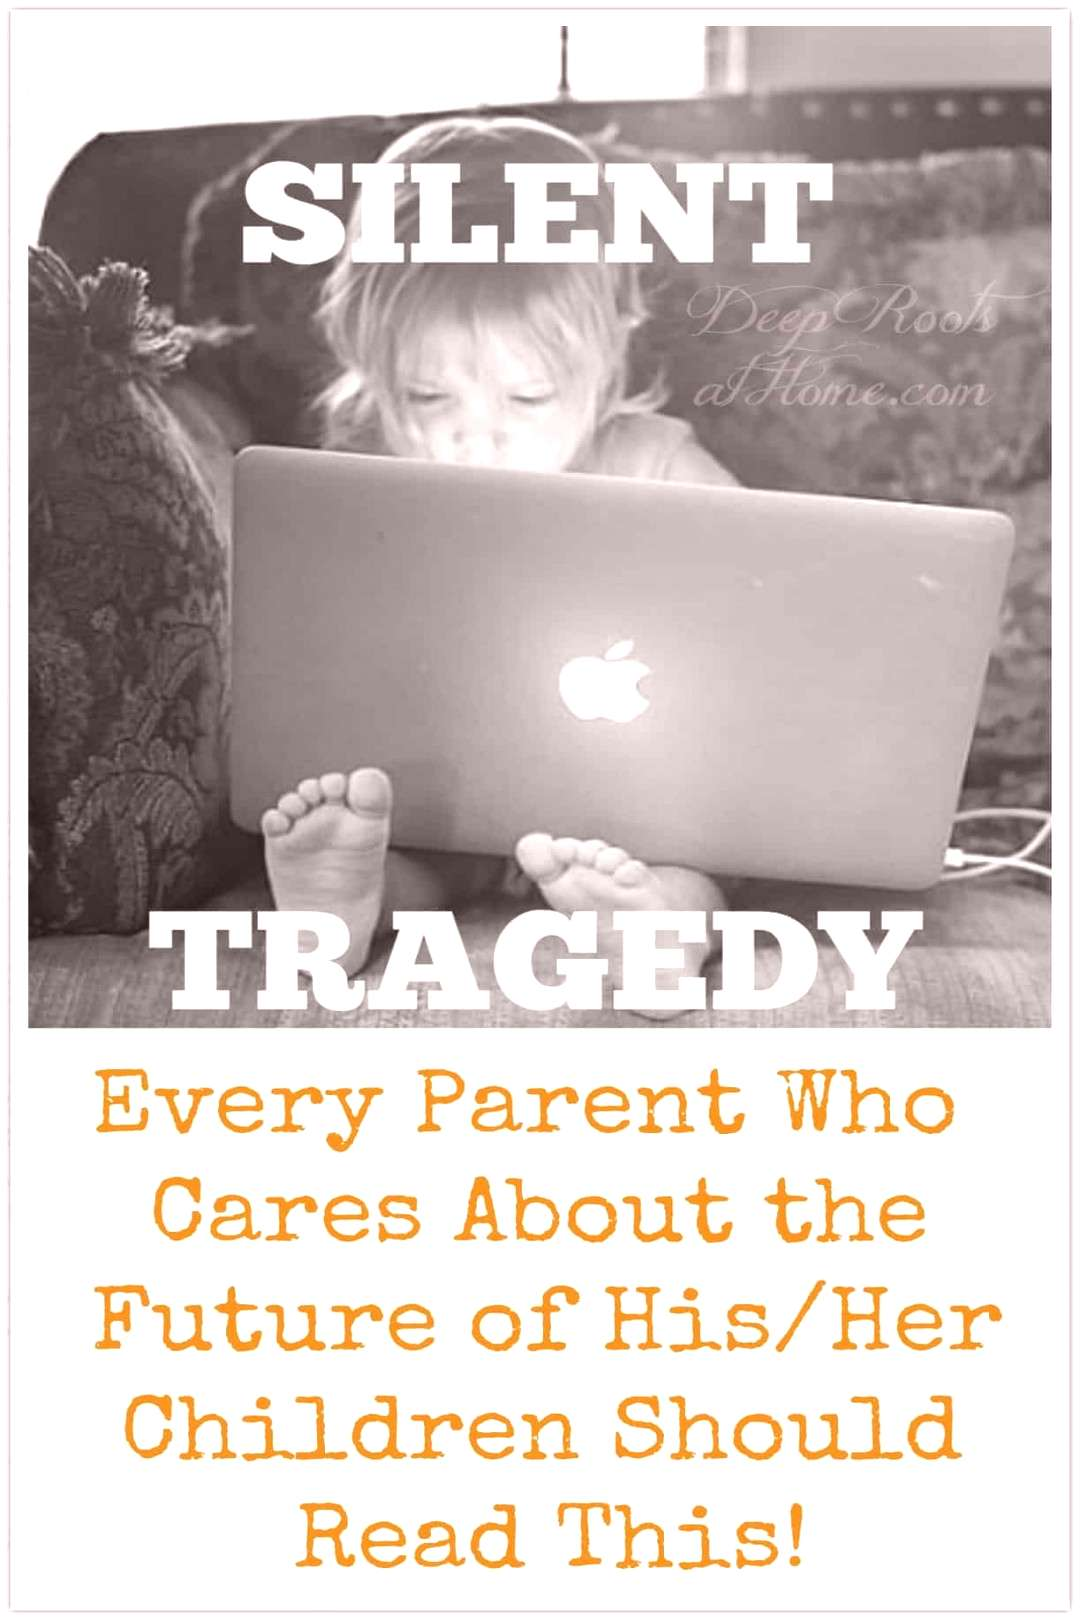 Child Harm, the Silent Tragedy Every Parent who Cares Should Read This.